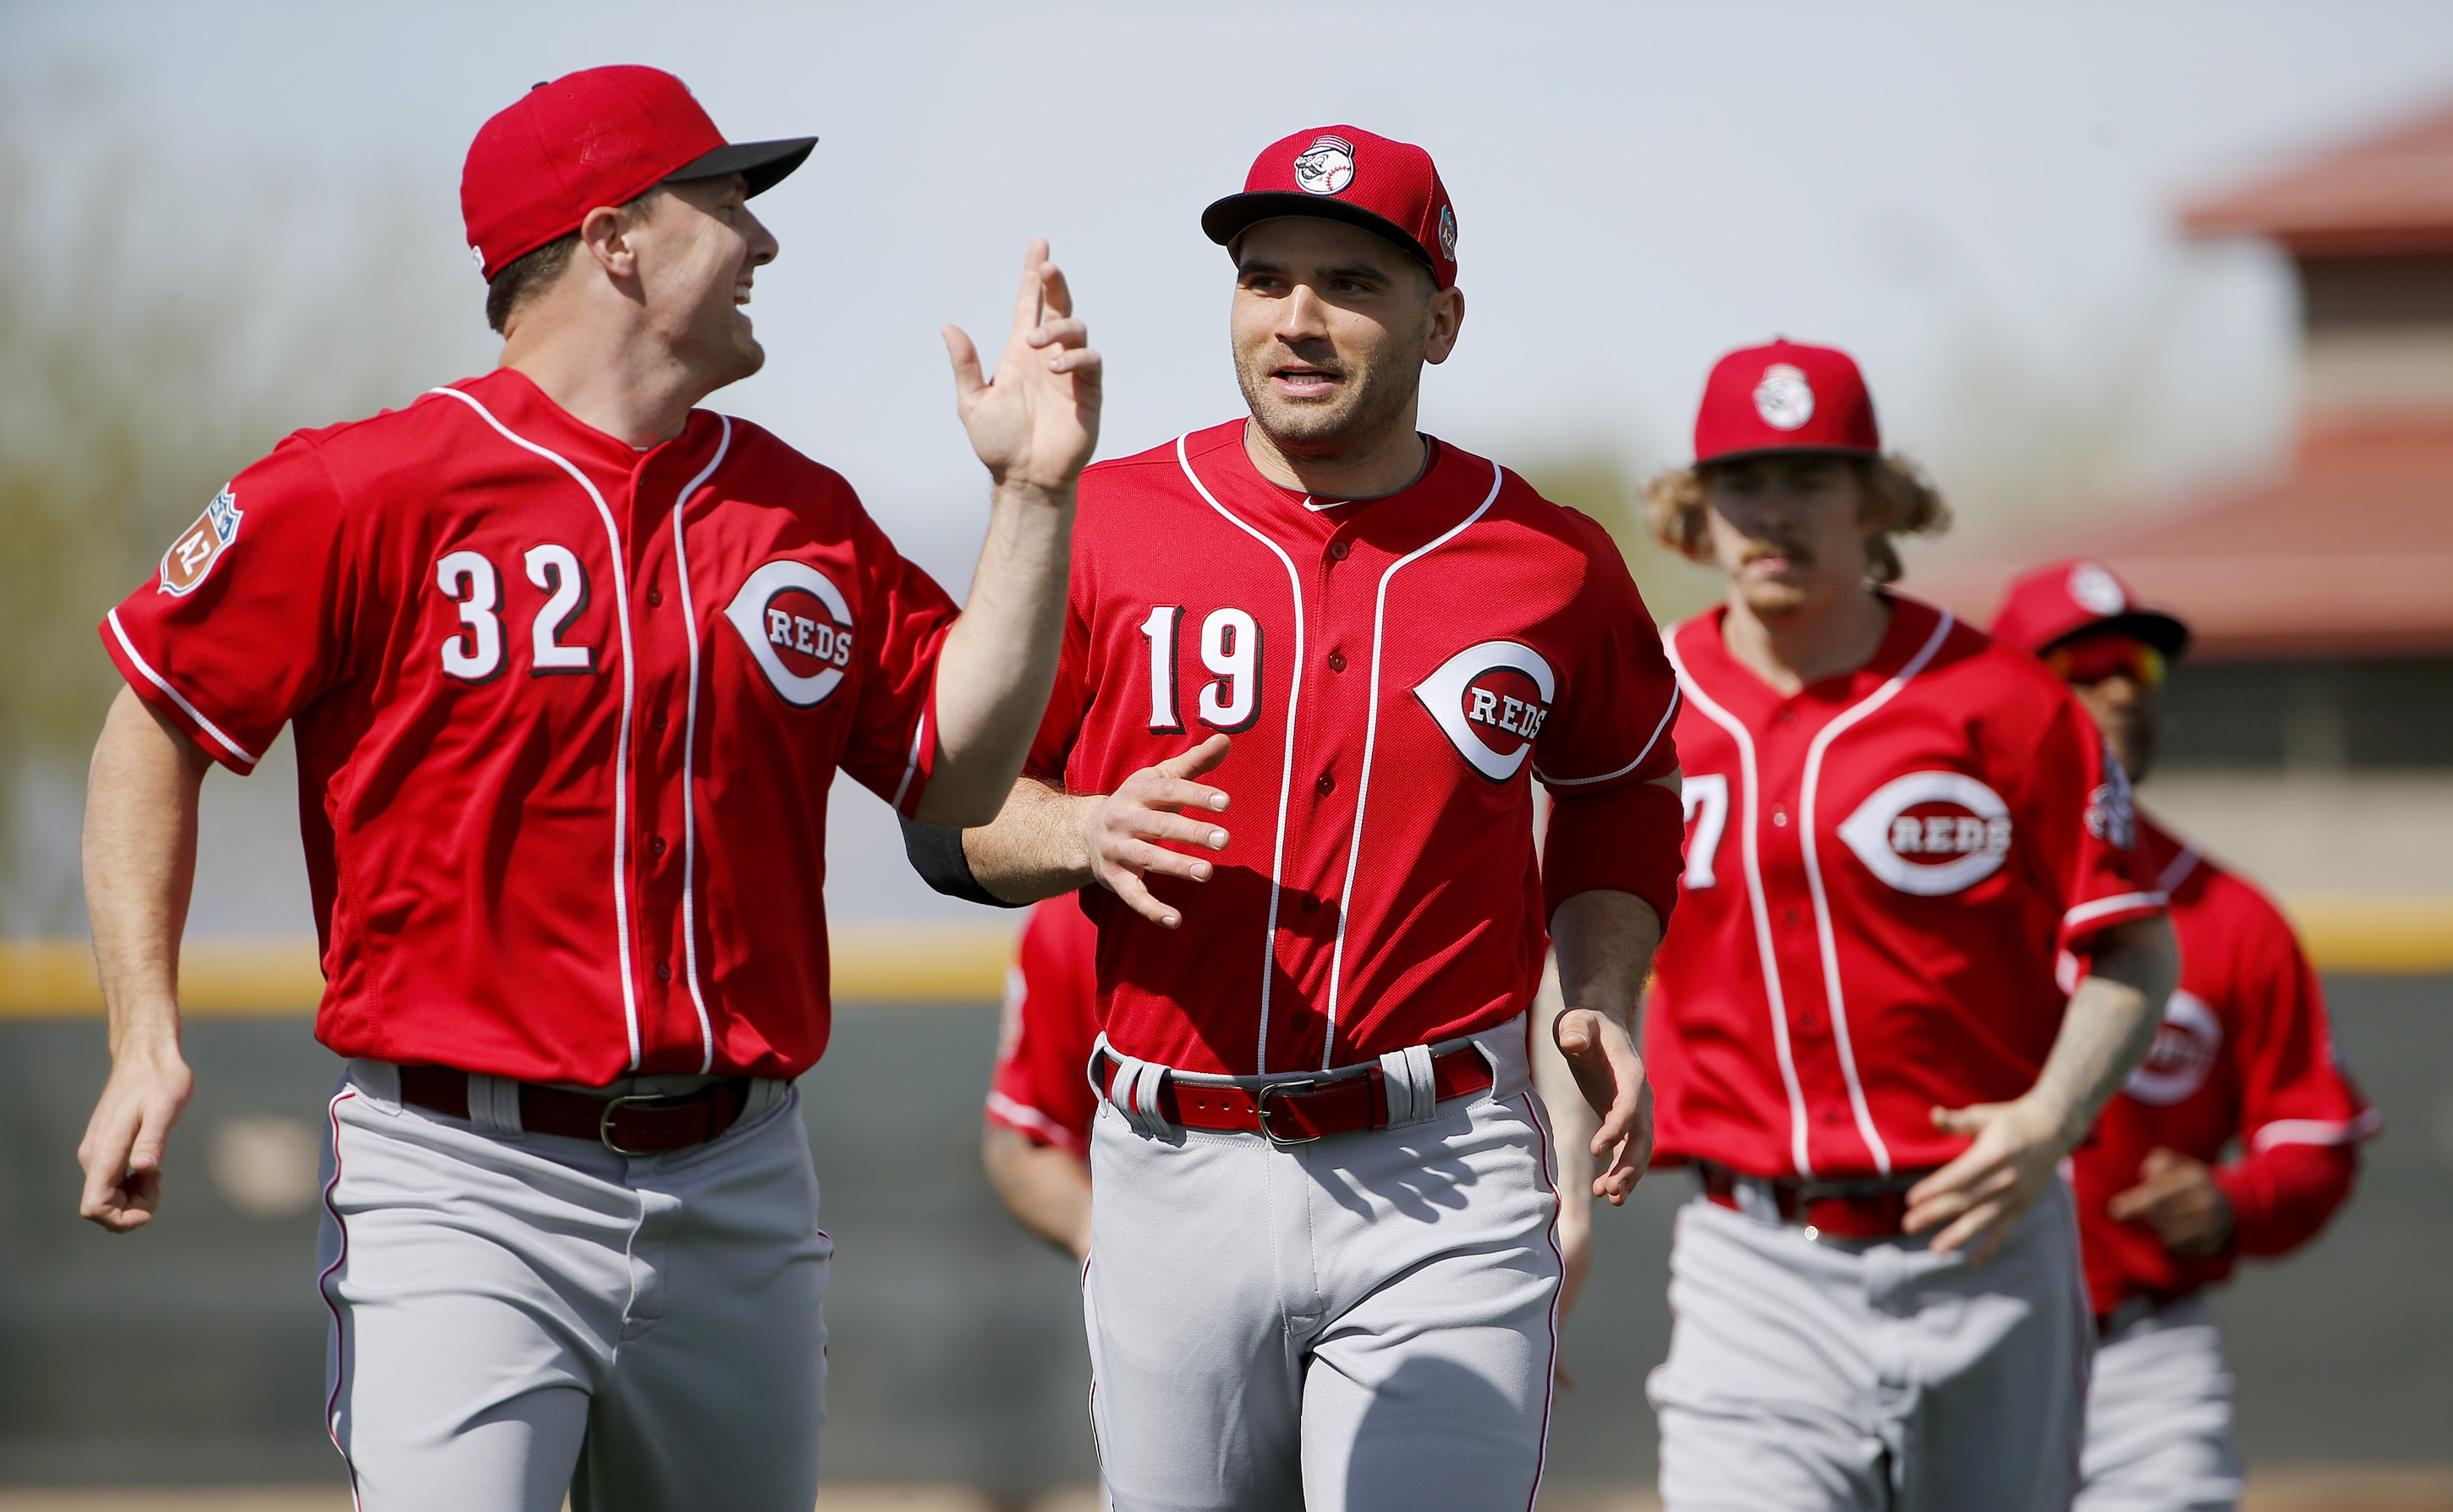 Cincinnati Reds' Joey Votto (19) talks with Jay Bruce (32) as they join teammates in running sprints during a spring training baseball workout Tuesday, Feb. 23, 2016, in Goodyear, Ariz. (AP Photo/Ross D. Franklin)